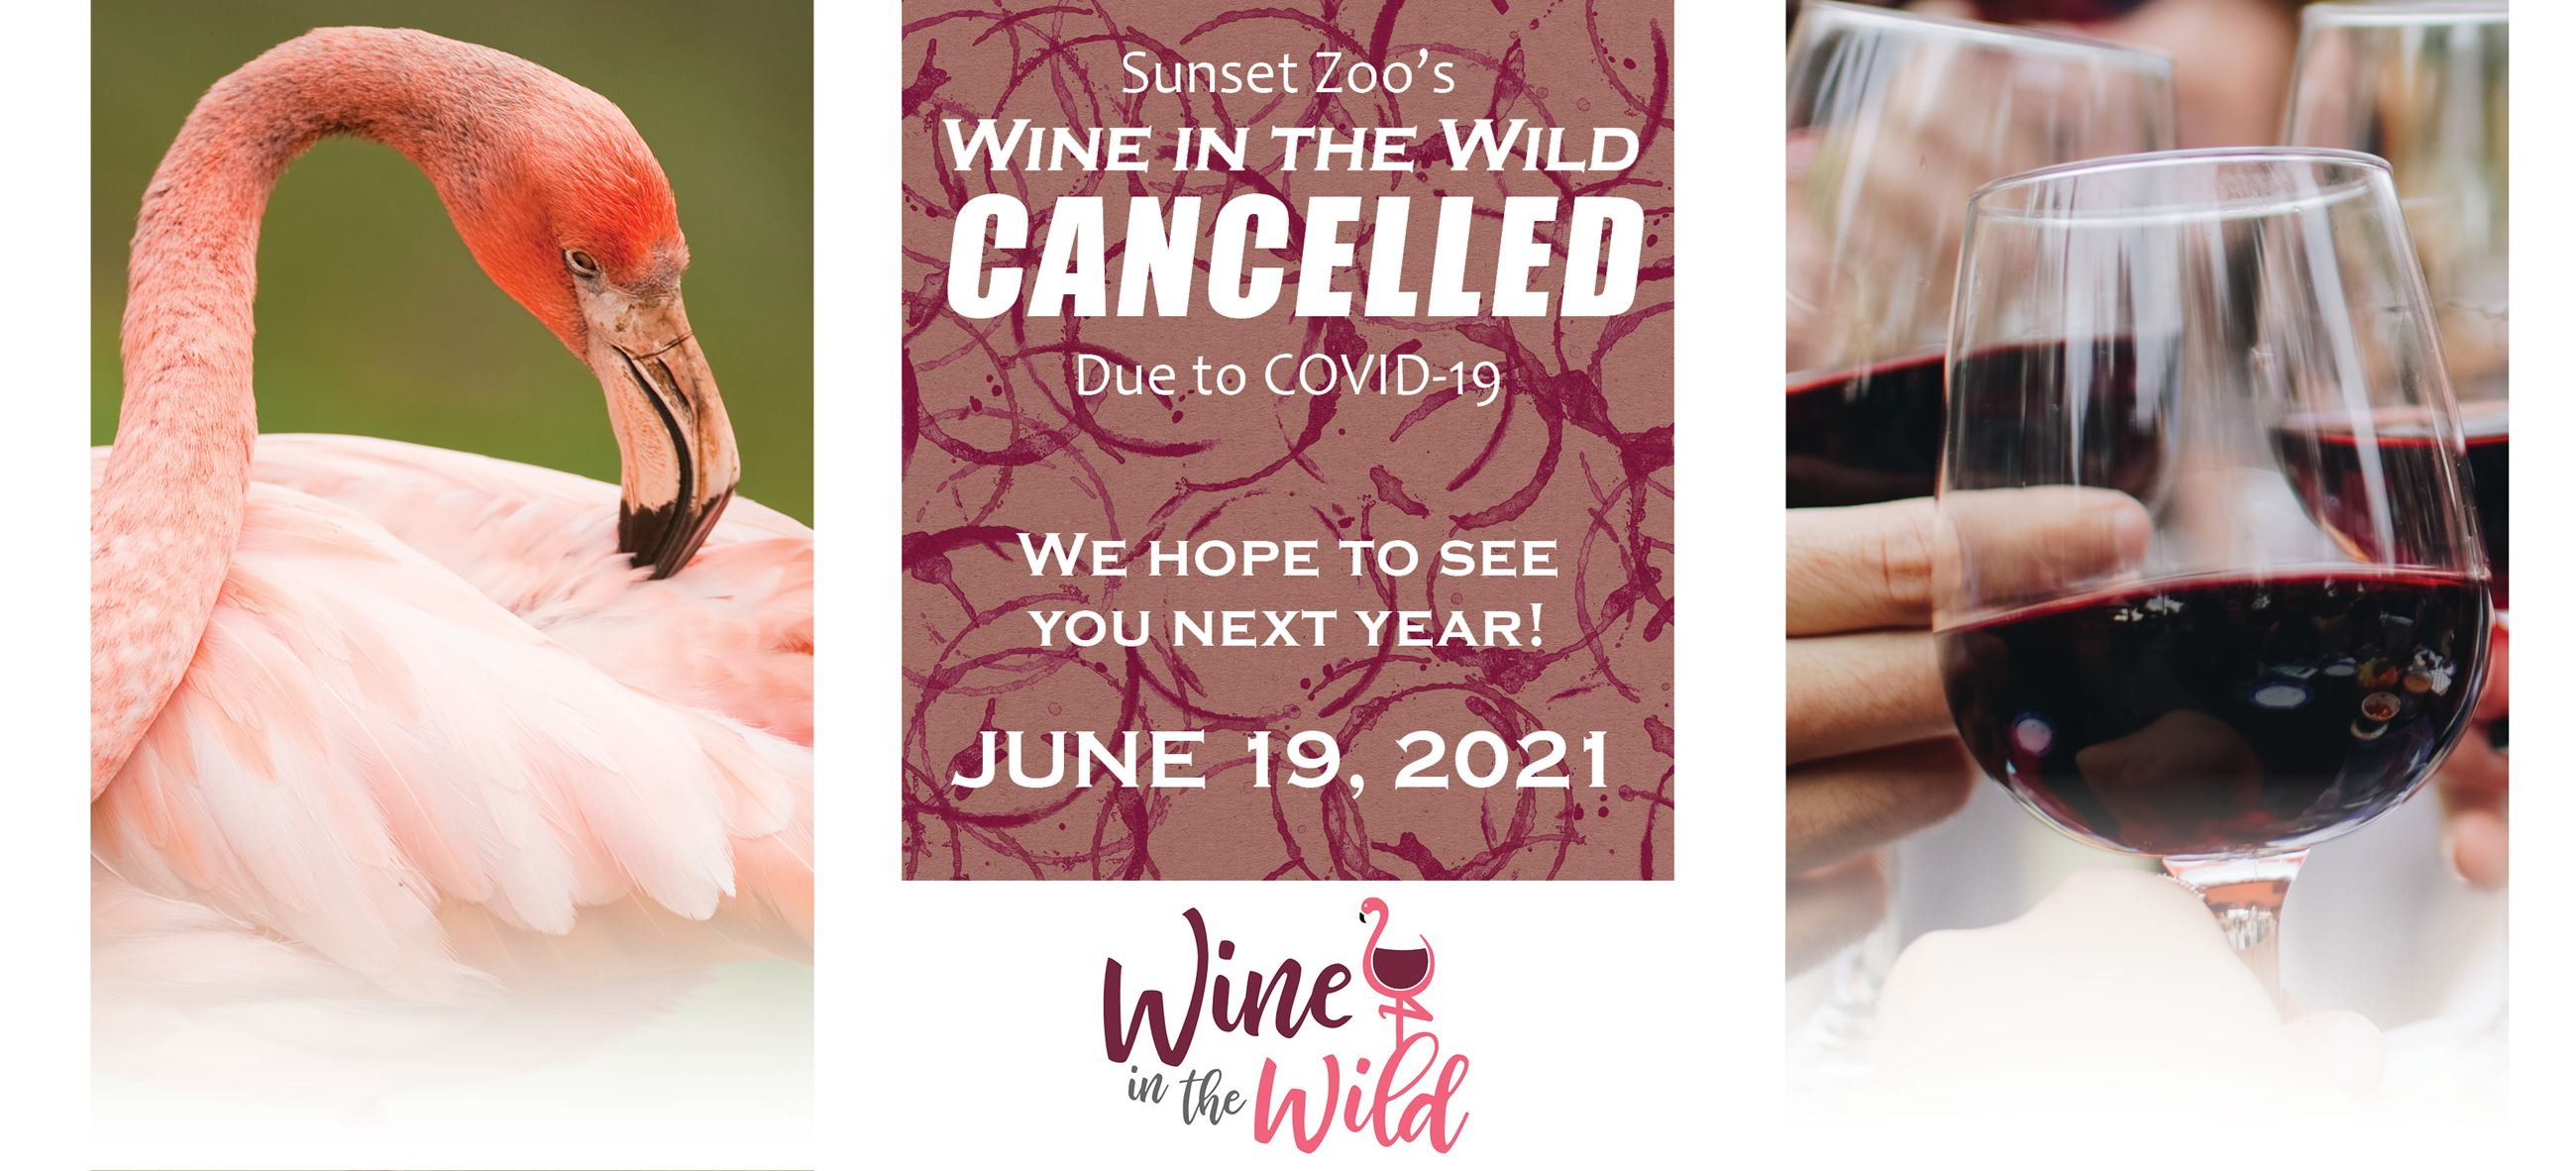 witw cancelled updated